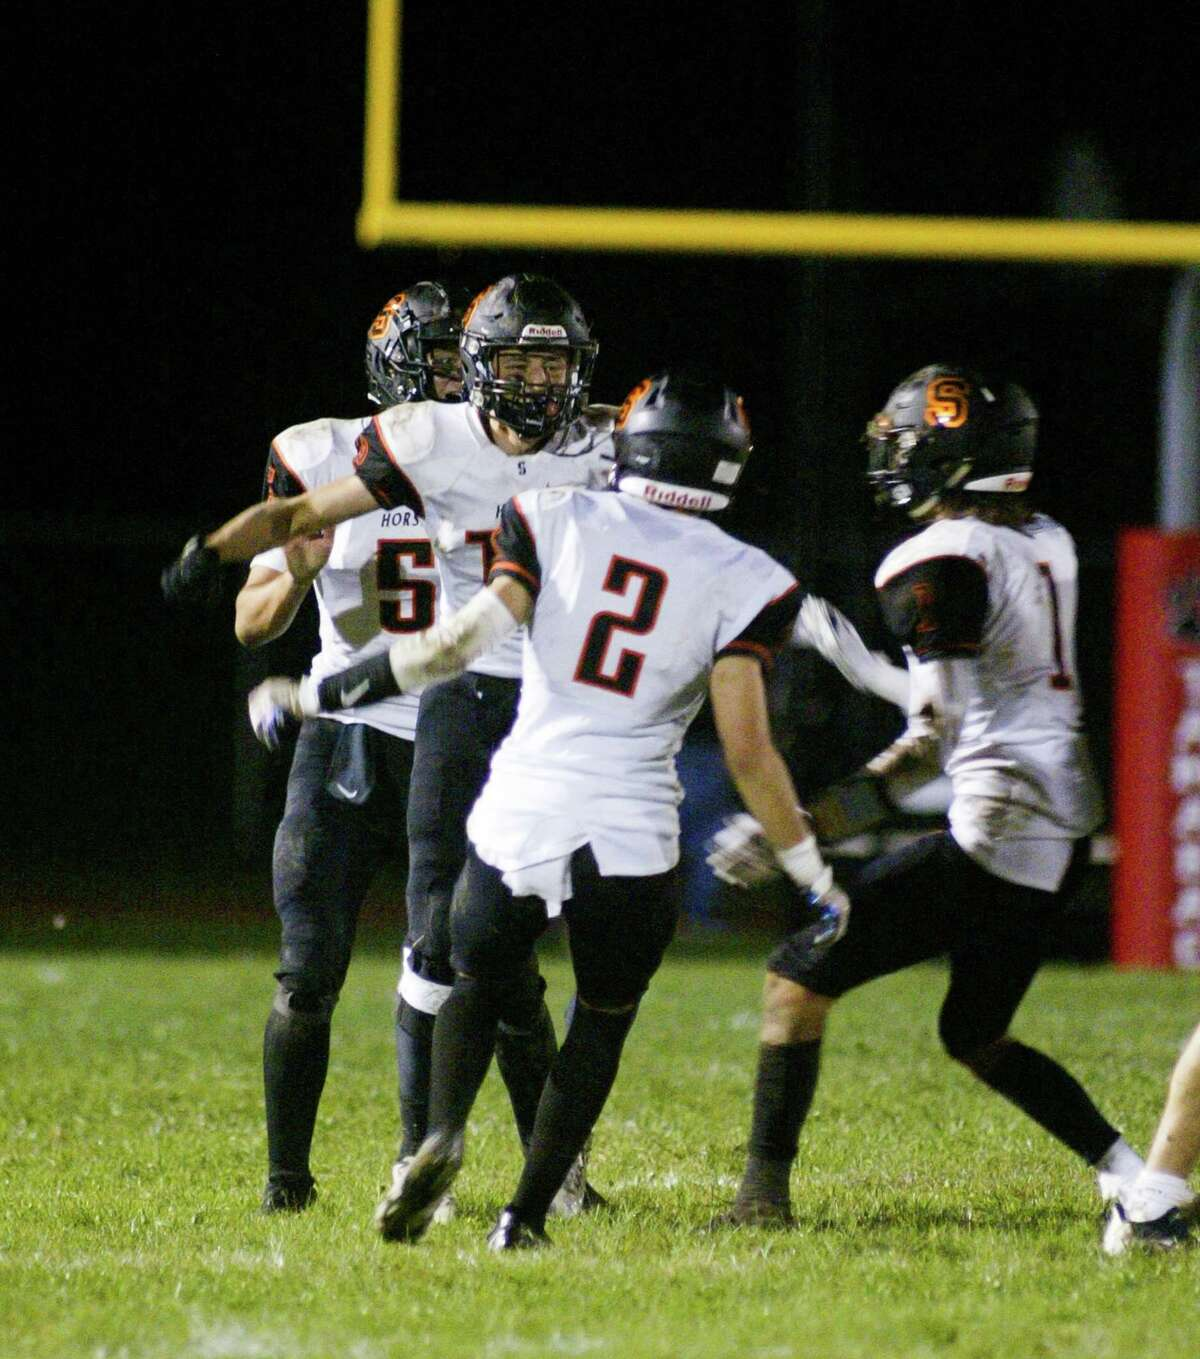 Ryan Dow, center, of Schuylerville, celebrates his late fourth-quarter interception against Hoosick Falls/Tamarac during their game on Sept. 10, 2021. (Jon Winslow / Special to the Times Union)